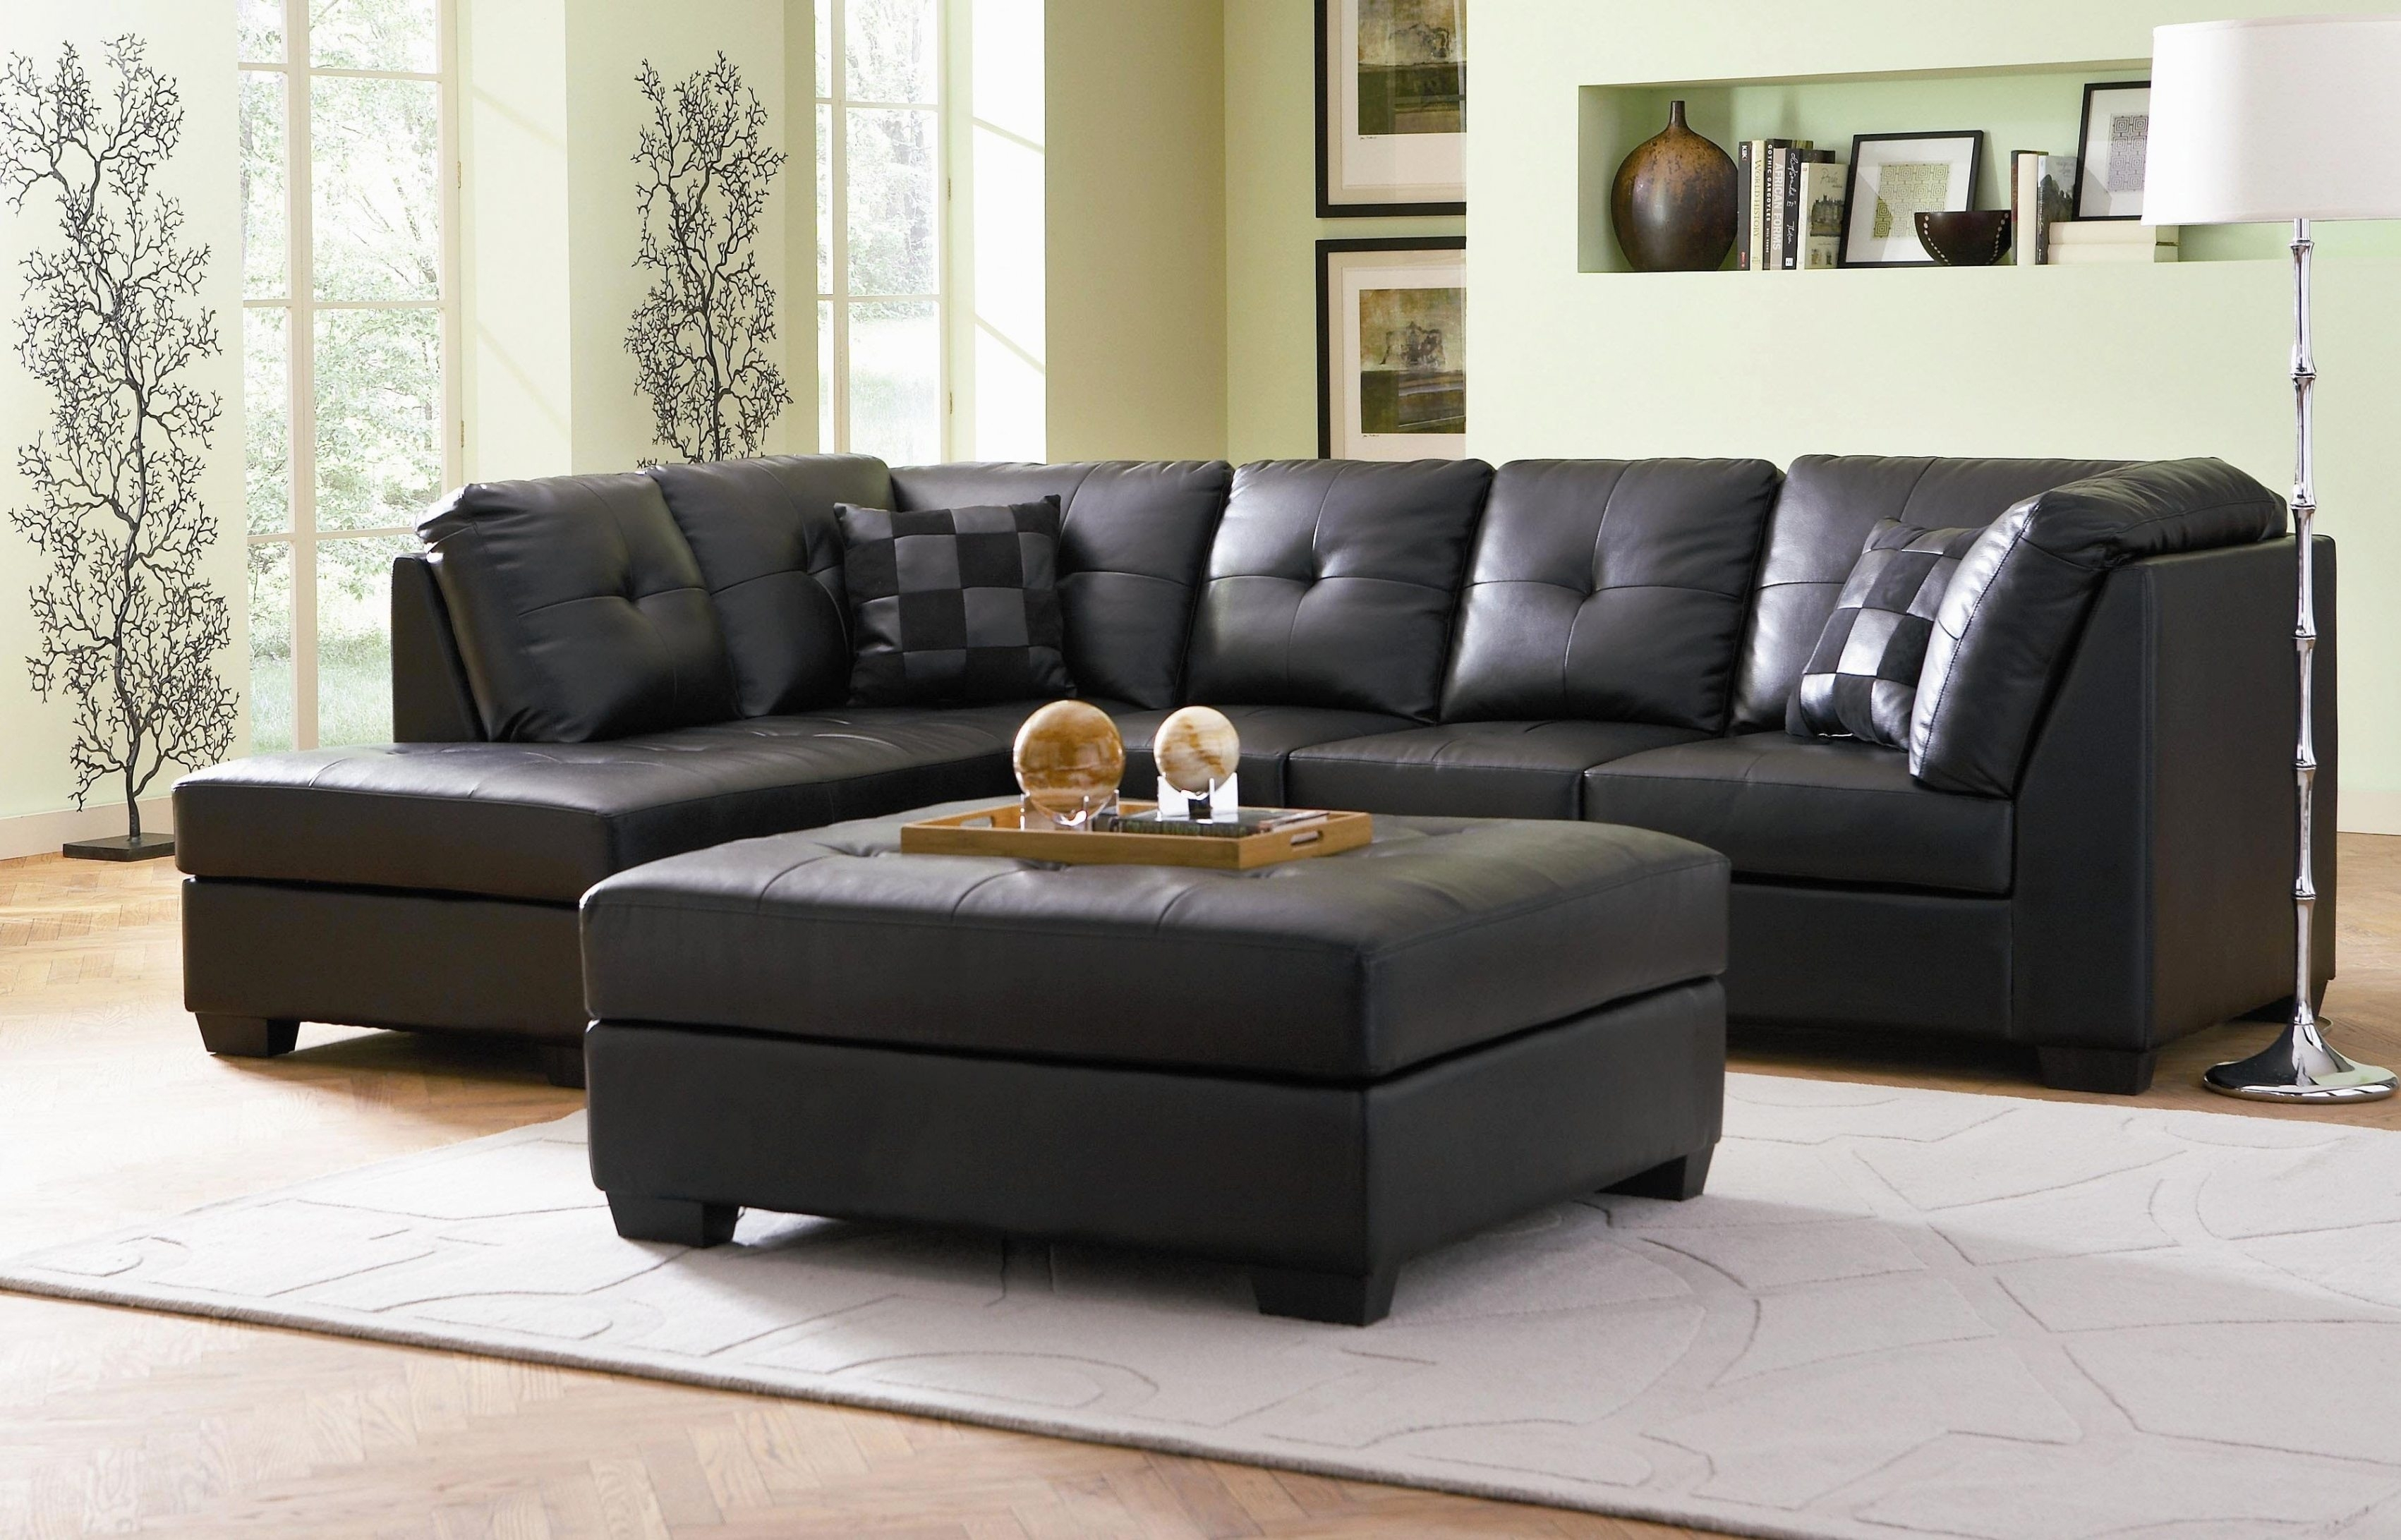 Couches For Under 200 #3 Cheap Sectional Sofas Under 300 | Bobs Inside Sectional Sofas Under  (Image 4 of 10)